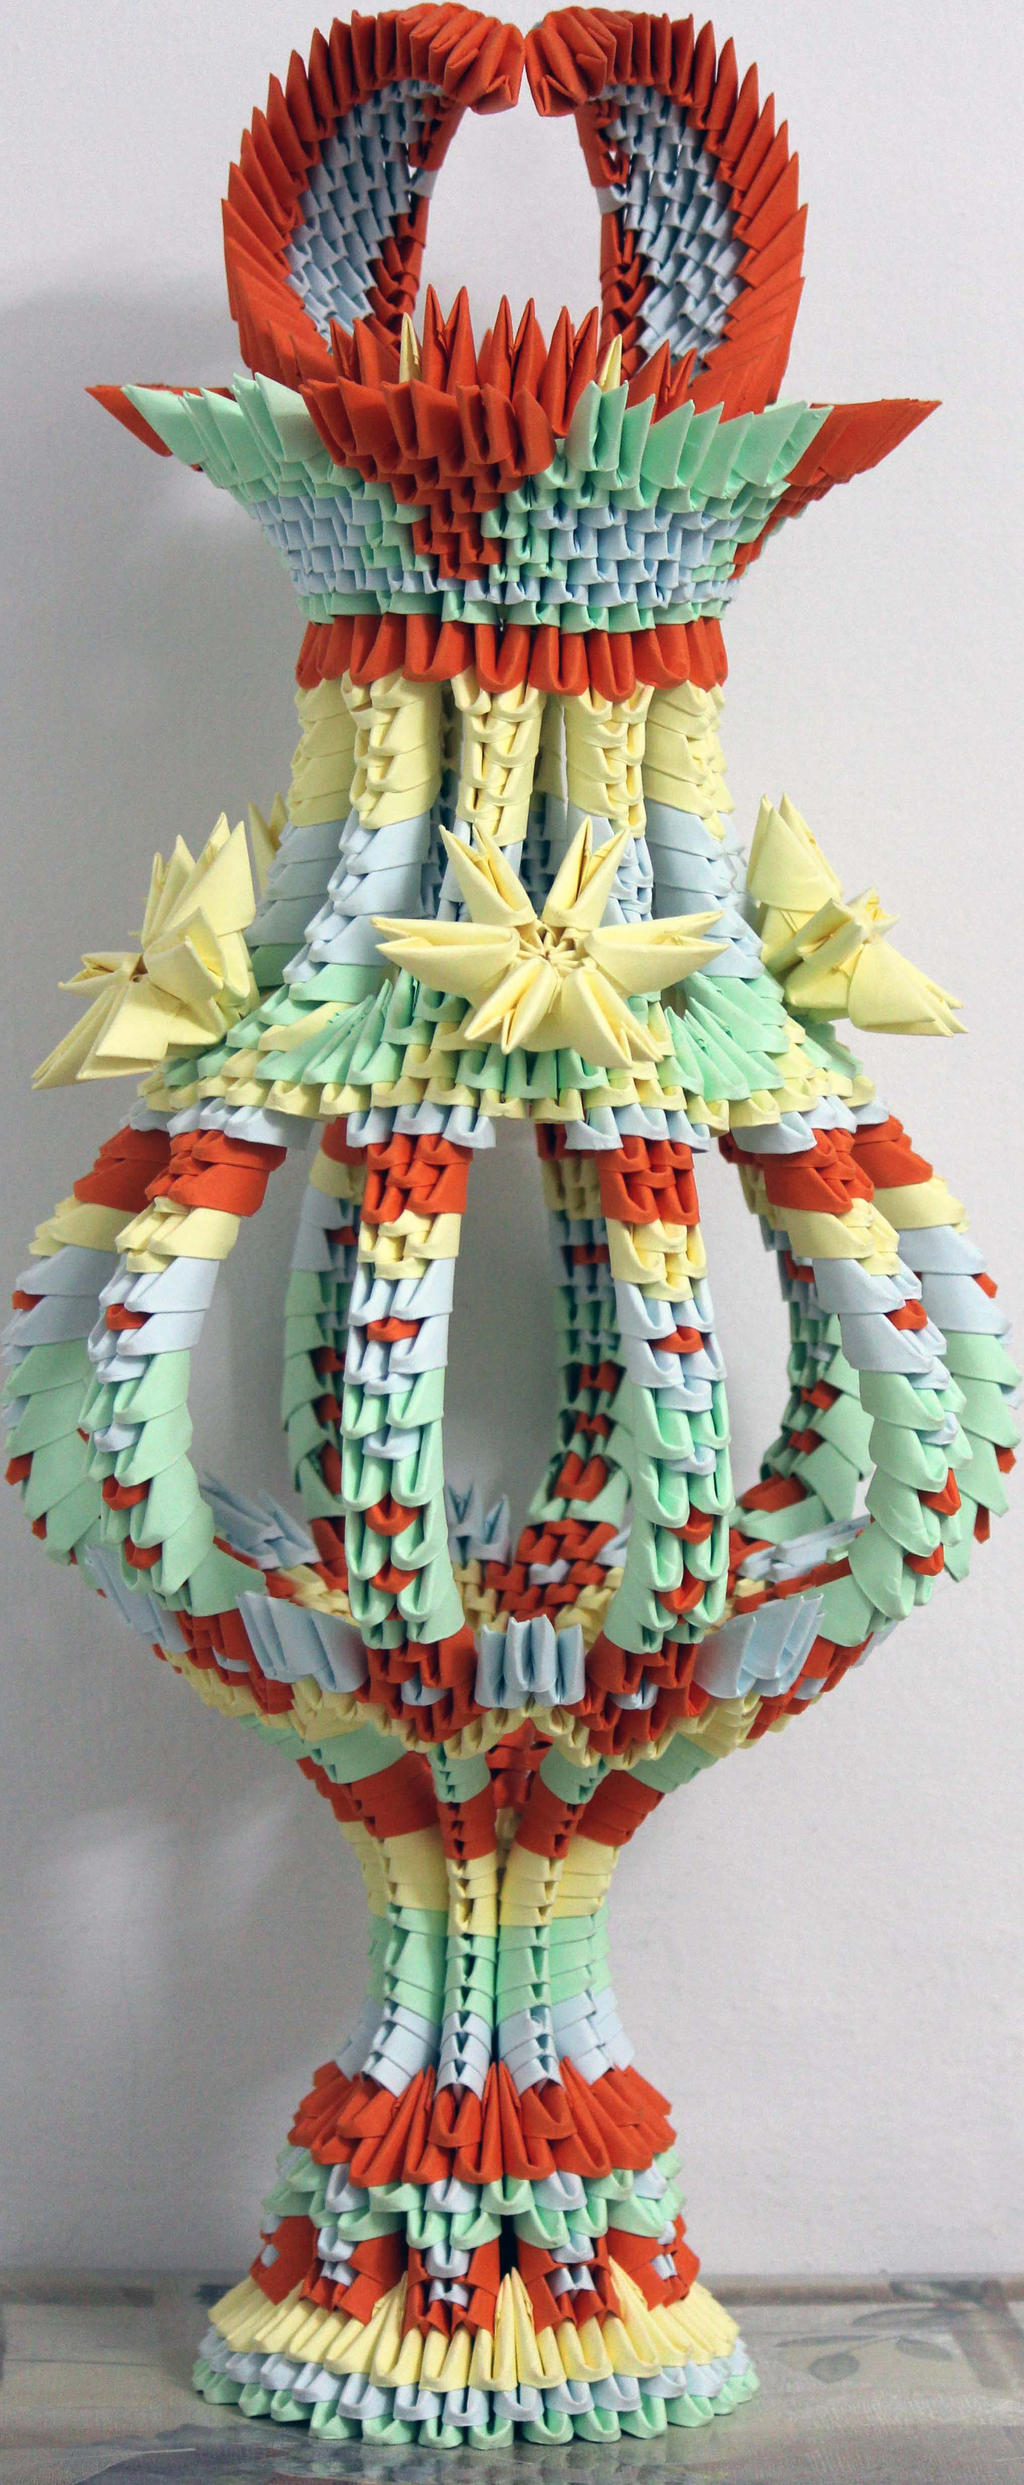 Origami vase by Catstrosity on DeviantArt - photo#19